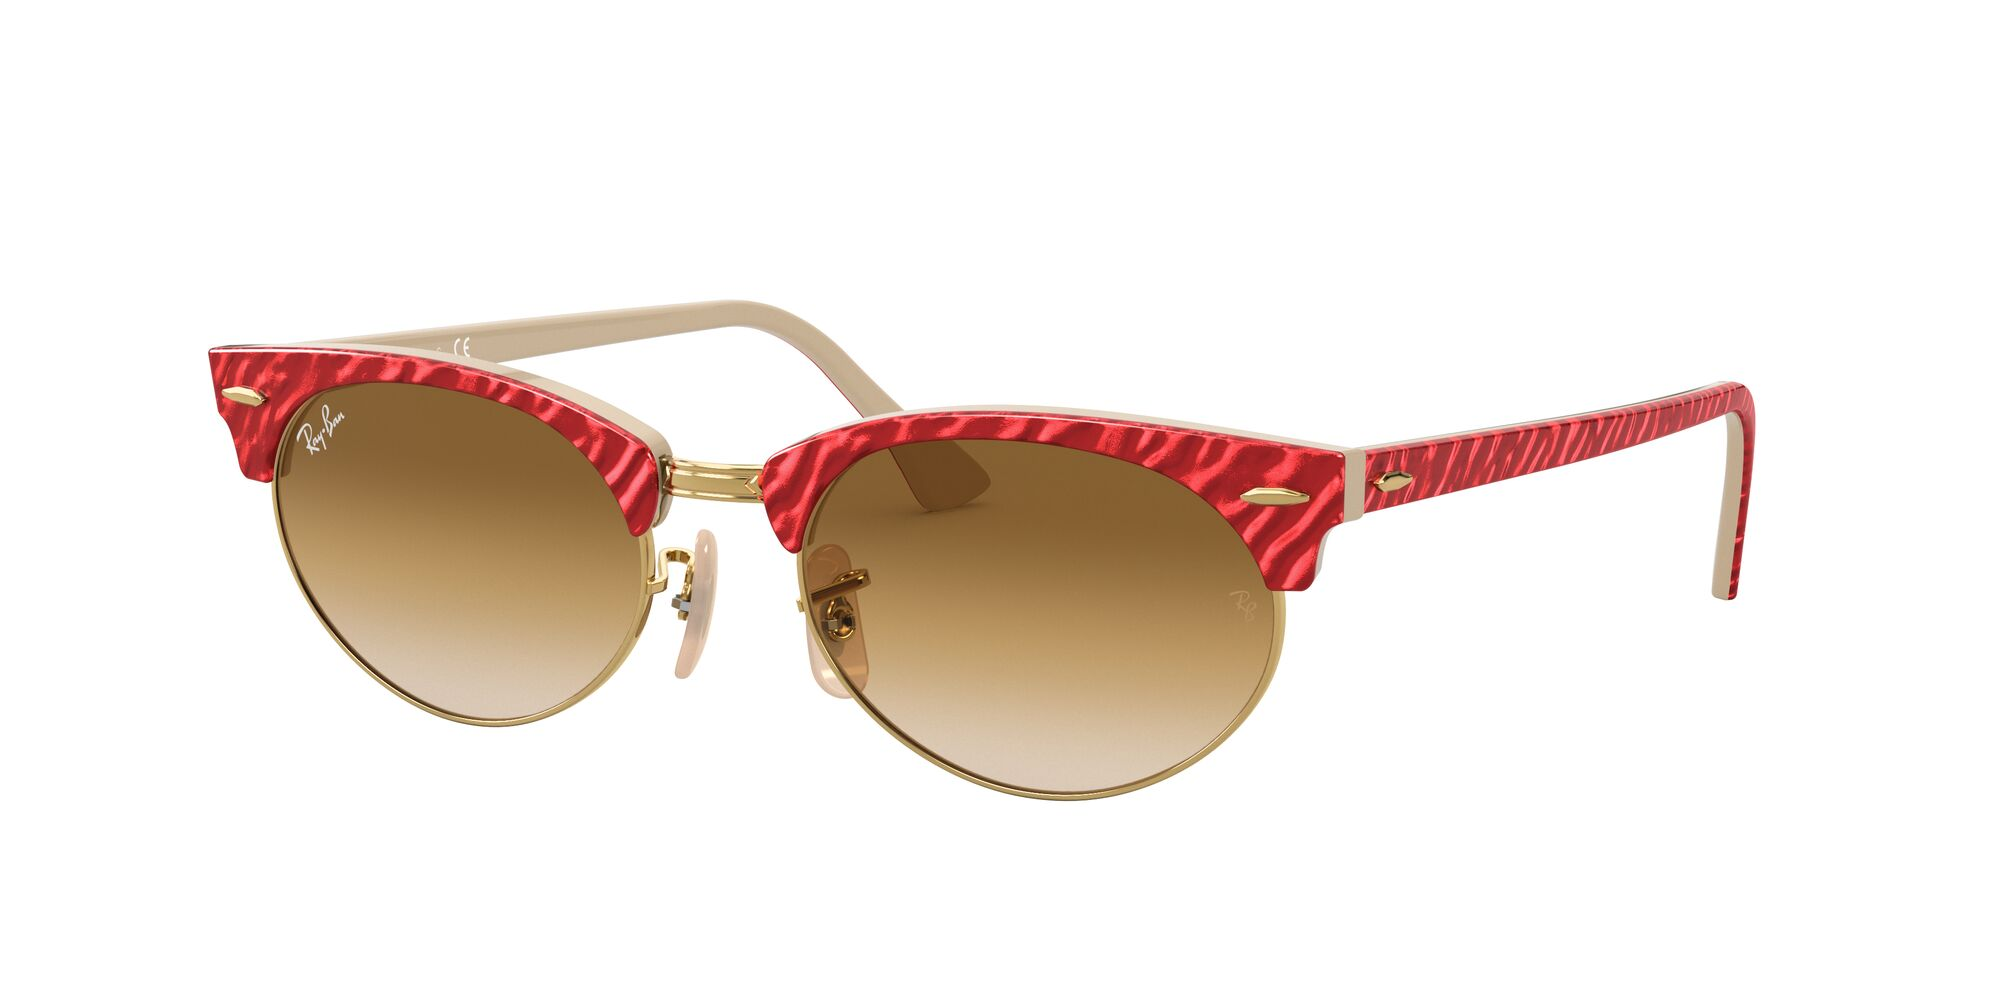 Angle_Left01 Ray-Ban Ray-Ban 0RB3946 130851 51/19 Rood, Beige/Bruin